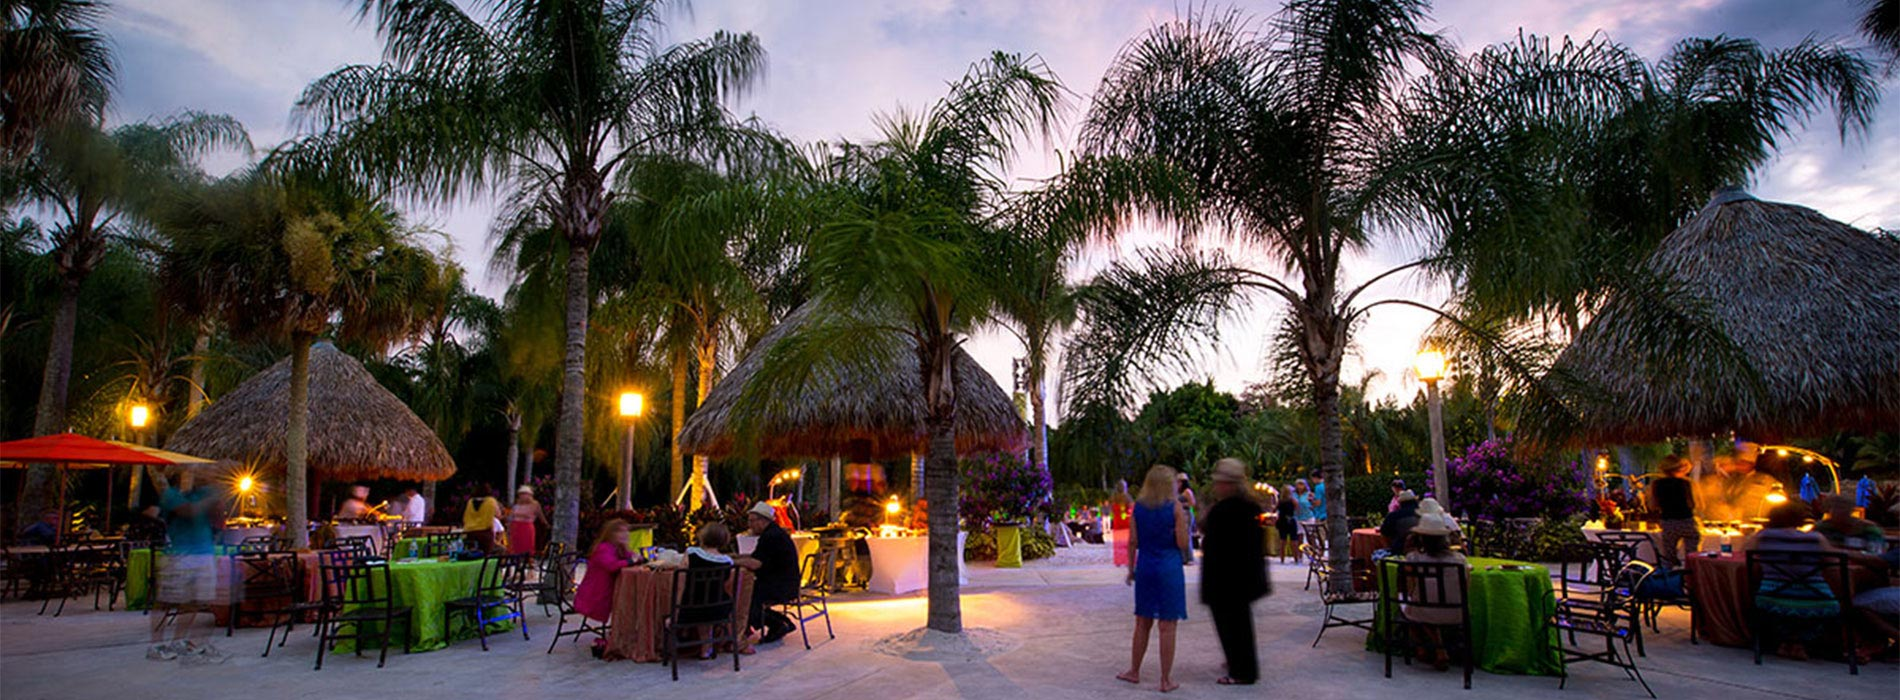 Group events at Discovery Cove